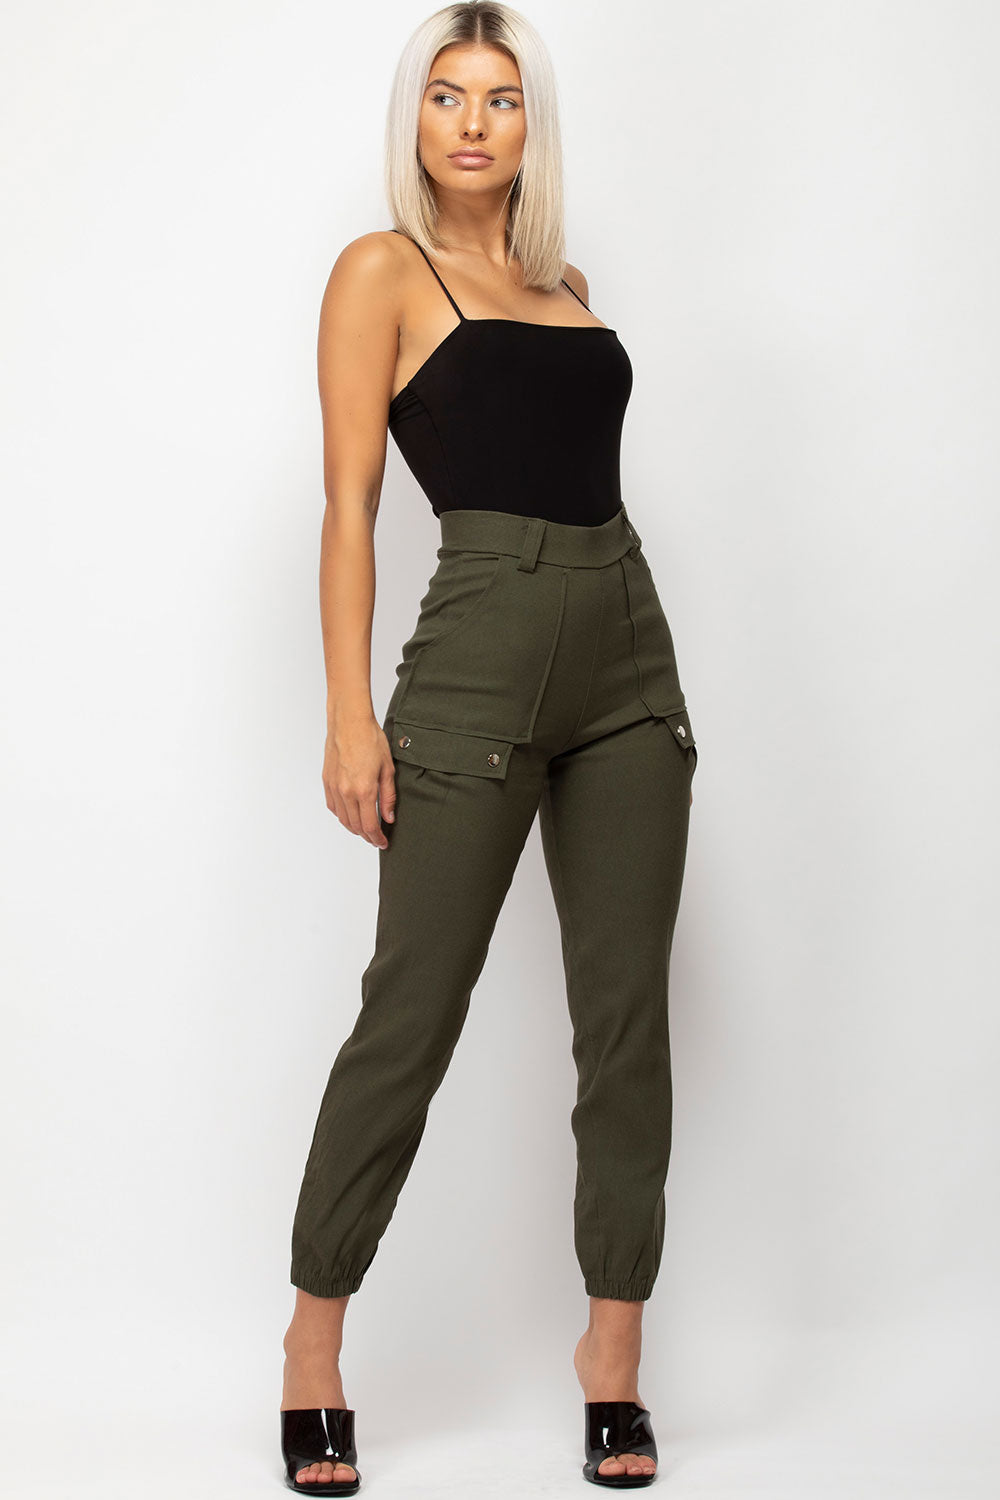 khaki cargo trousers womens